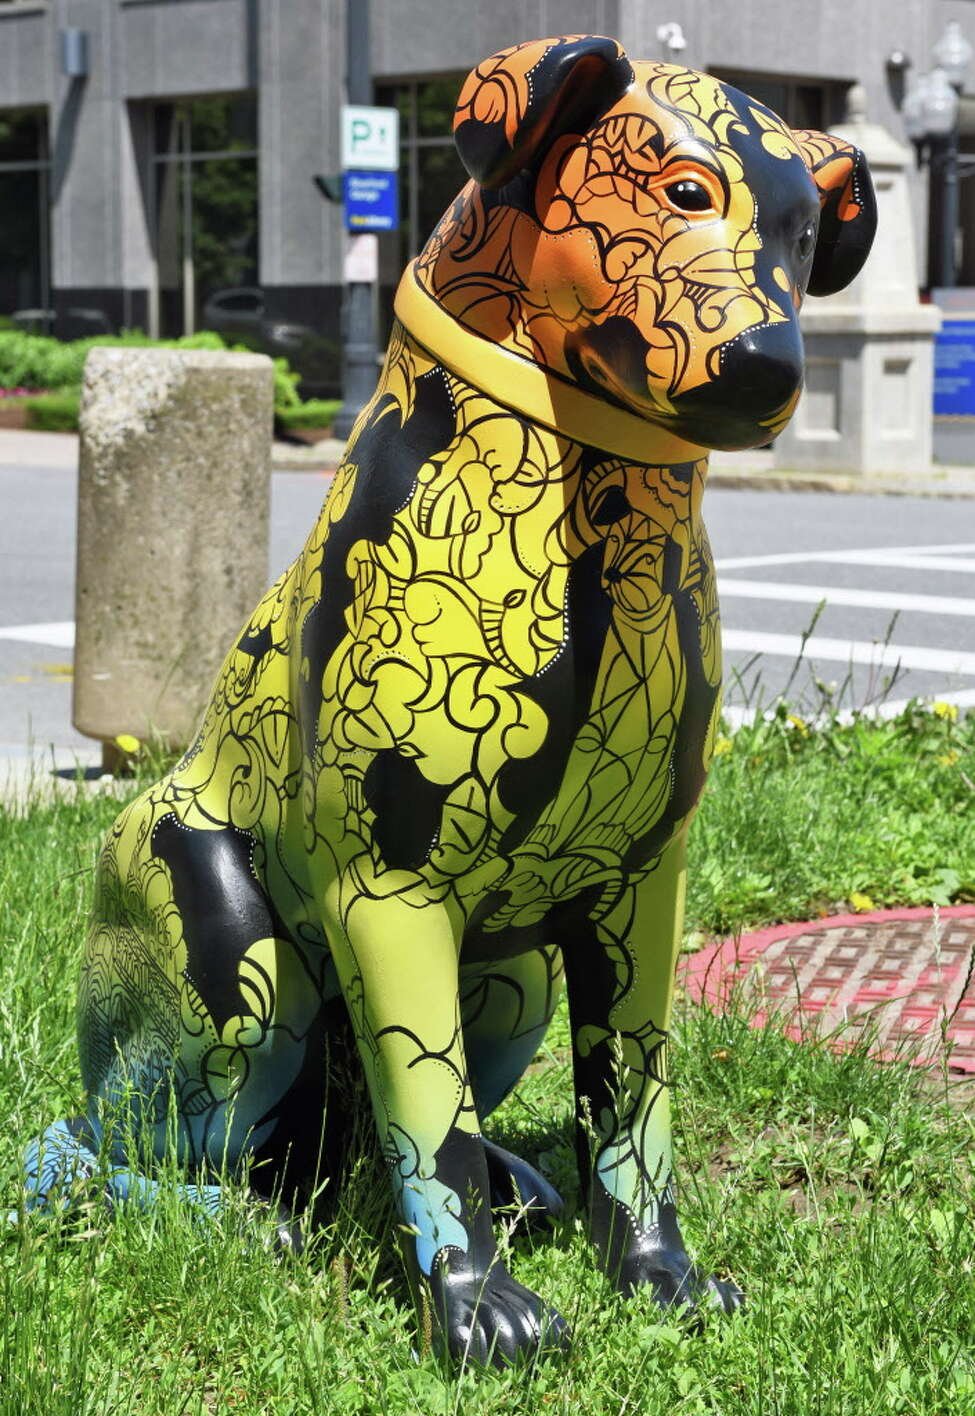 One of 20 3-foot-tall statues of Nipper as part of ODowntown is Pawsome,O outside the Albany Center Gallery Friday June 9, 2017 in Albany, NY. (John Carl D'Annibale / Times Union)